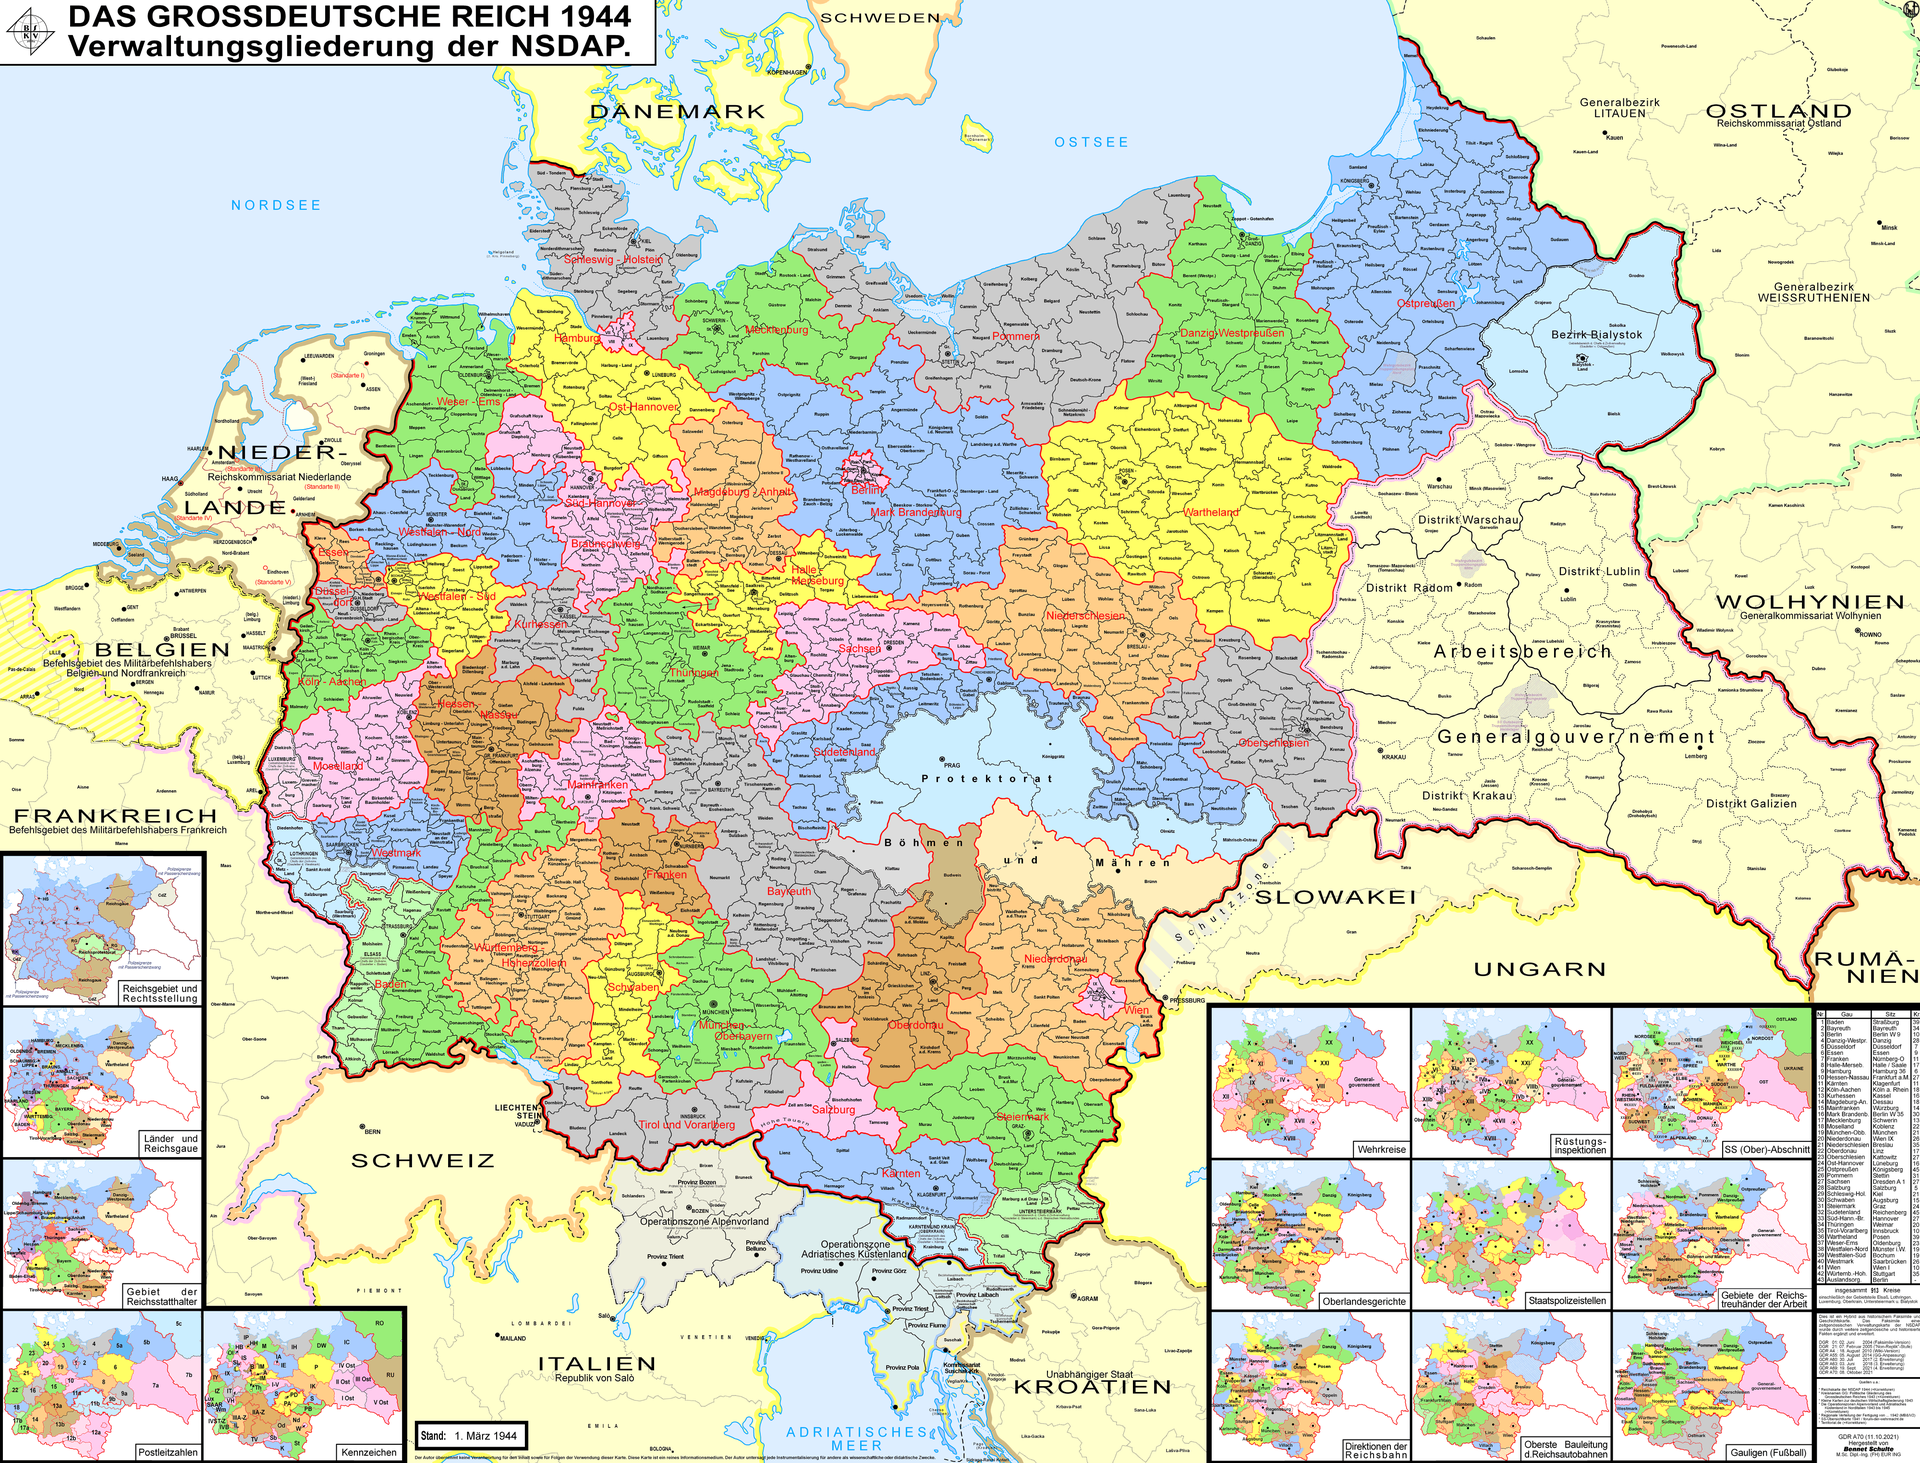 [Image: 1920px-NS_administrative_Gliederung_1944.png]